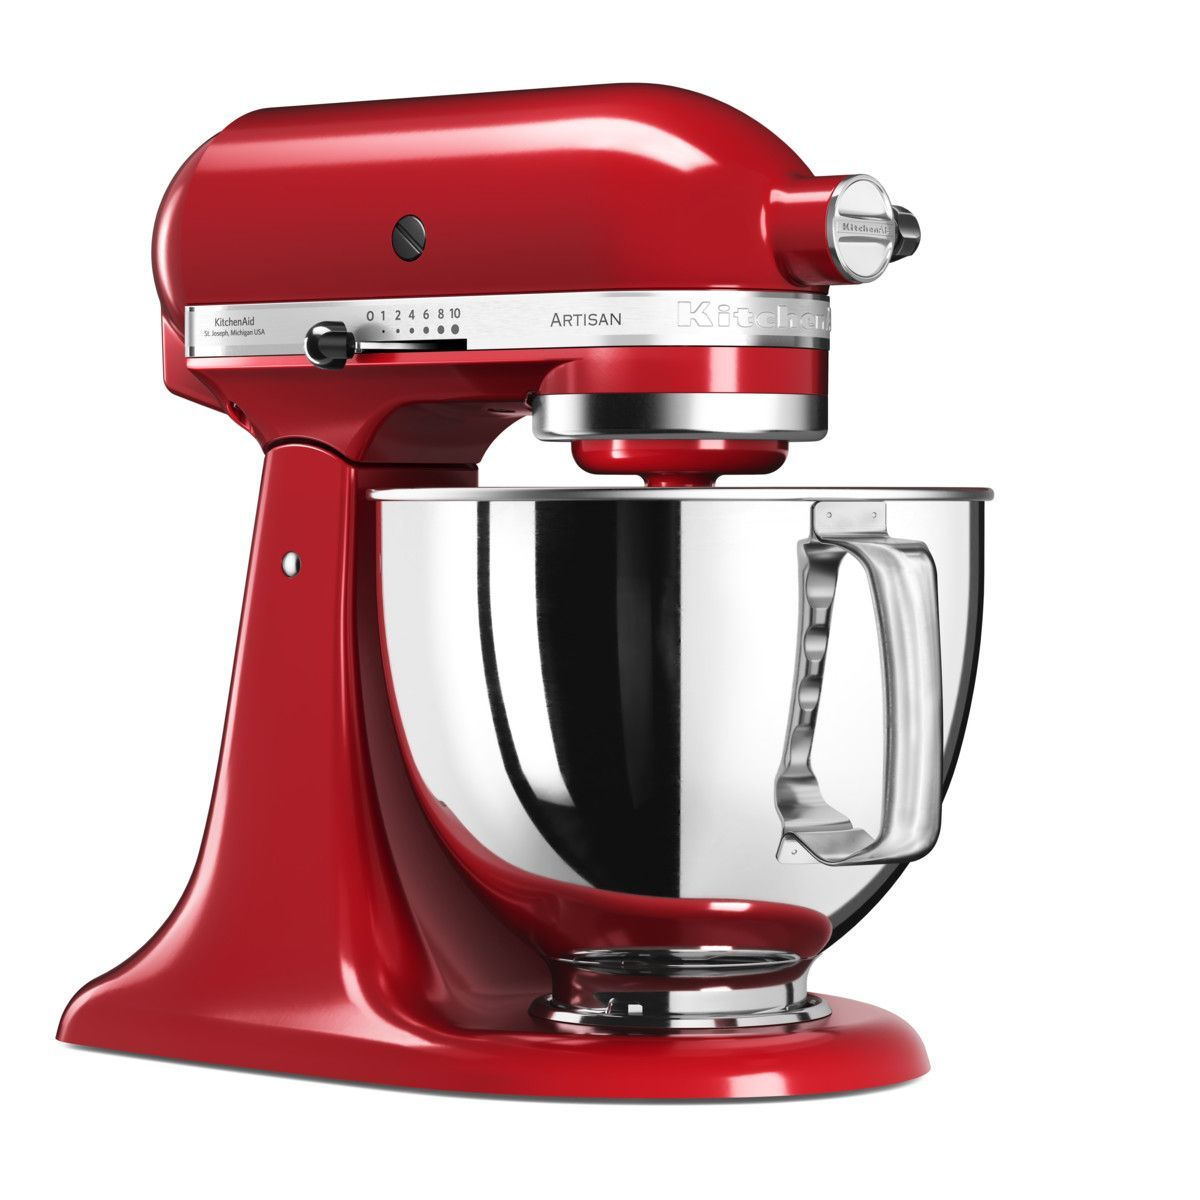 Kitchenaid Küchenmaschine Video Kitchenaid Artisan Stand Mixer 5ksm125 Empire Red Them Forks And